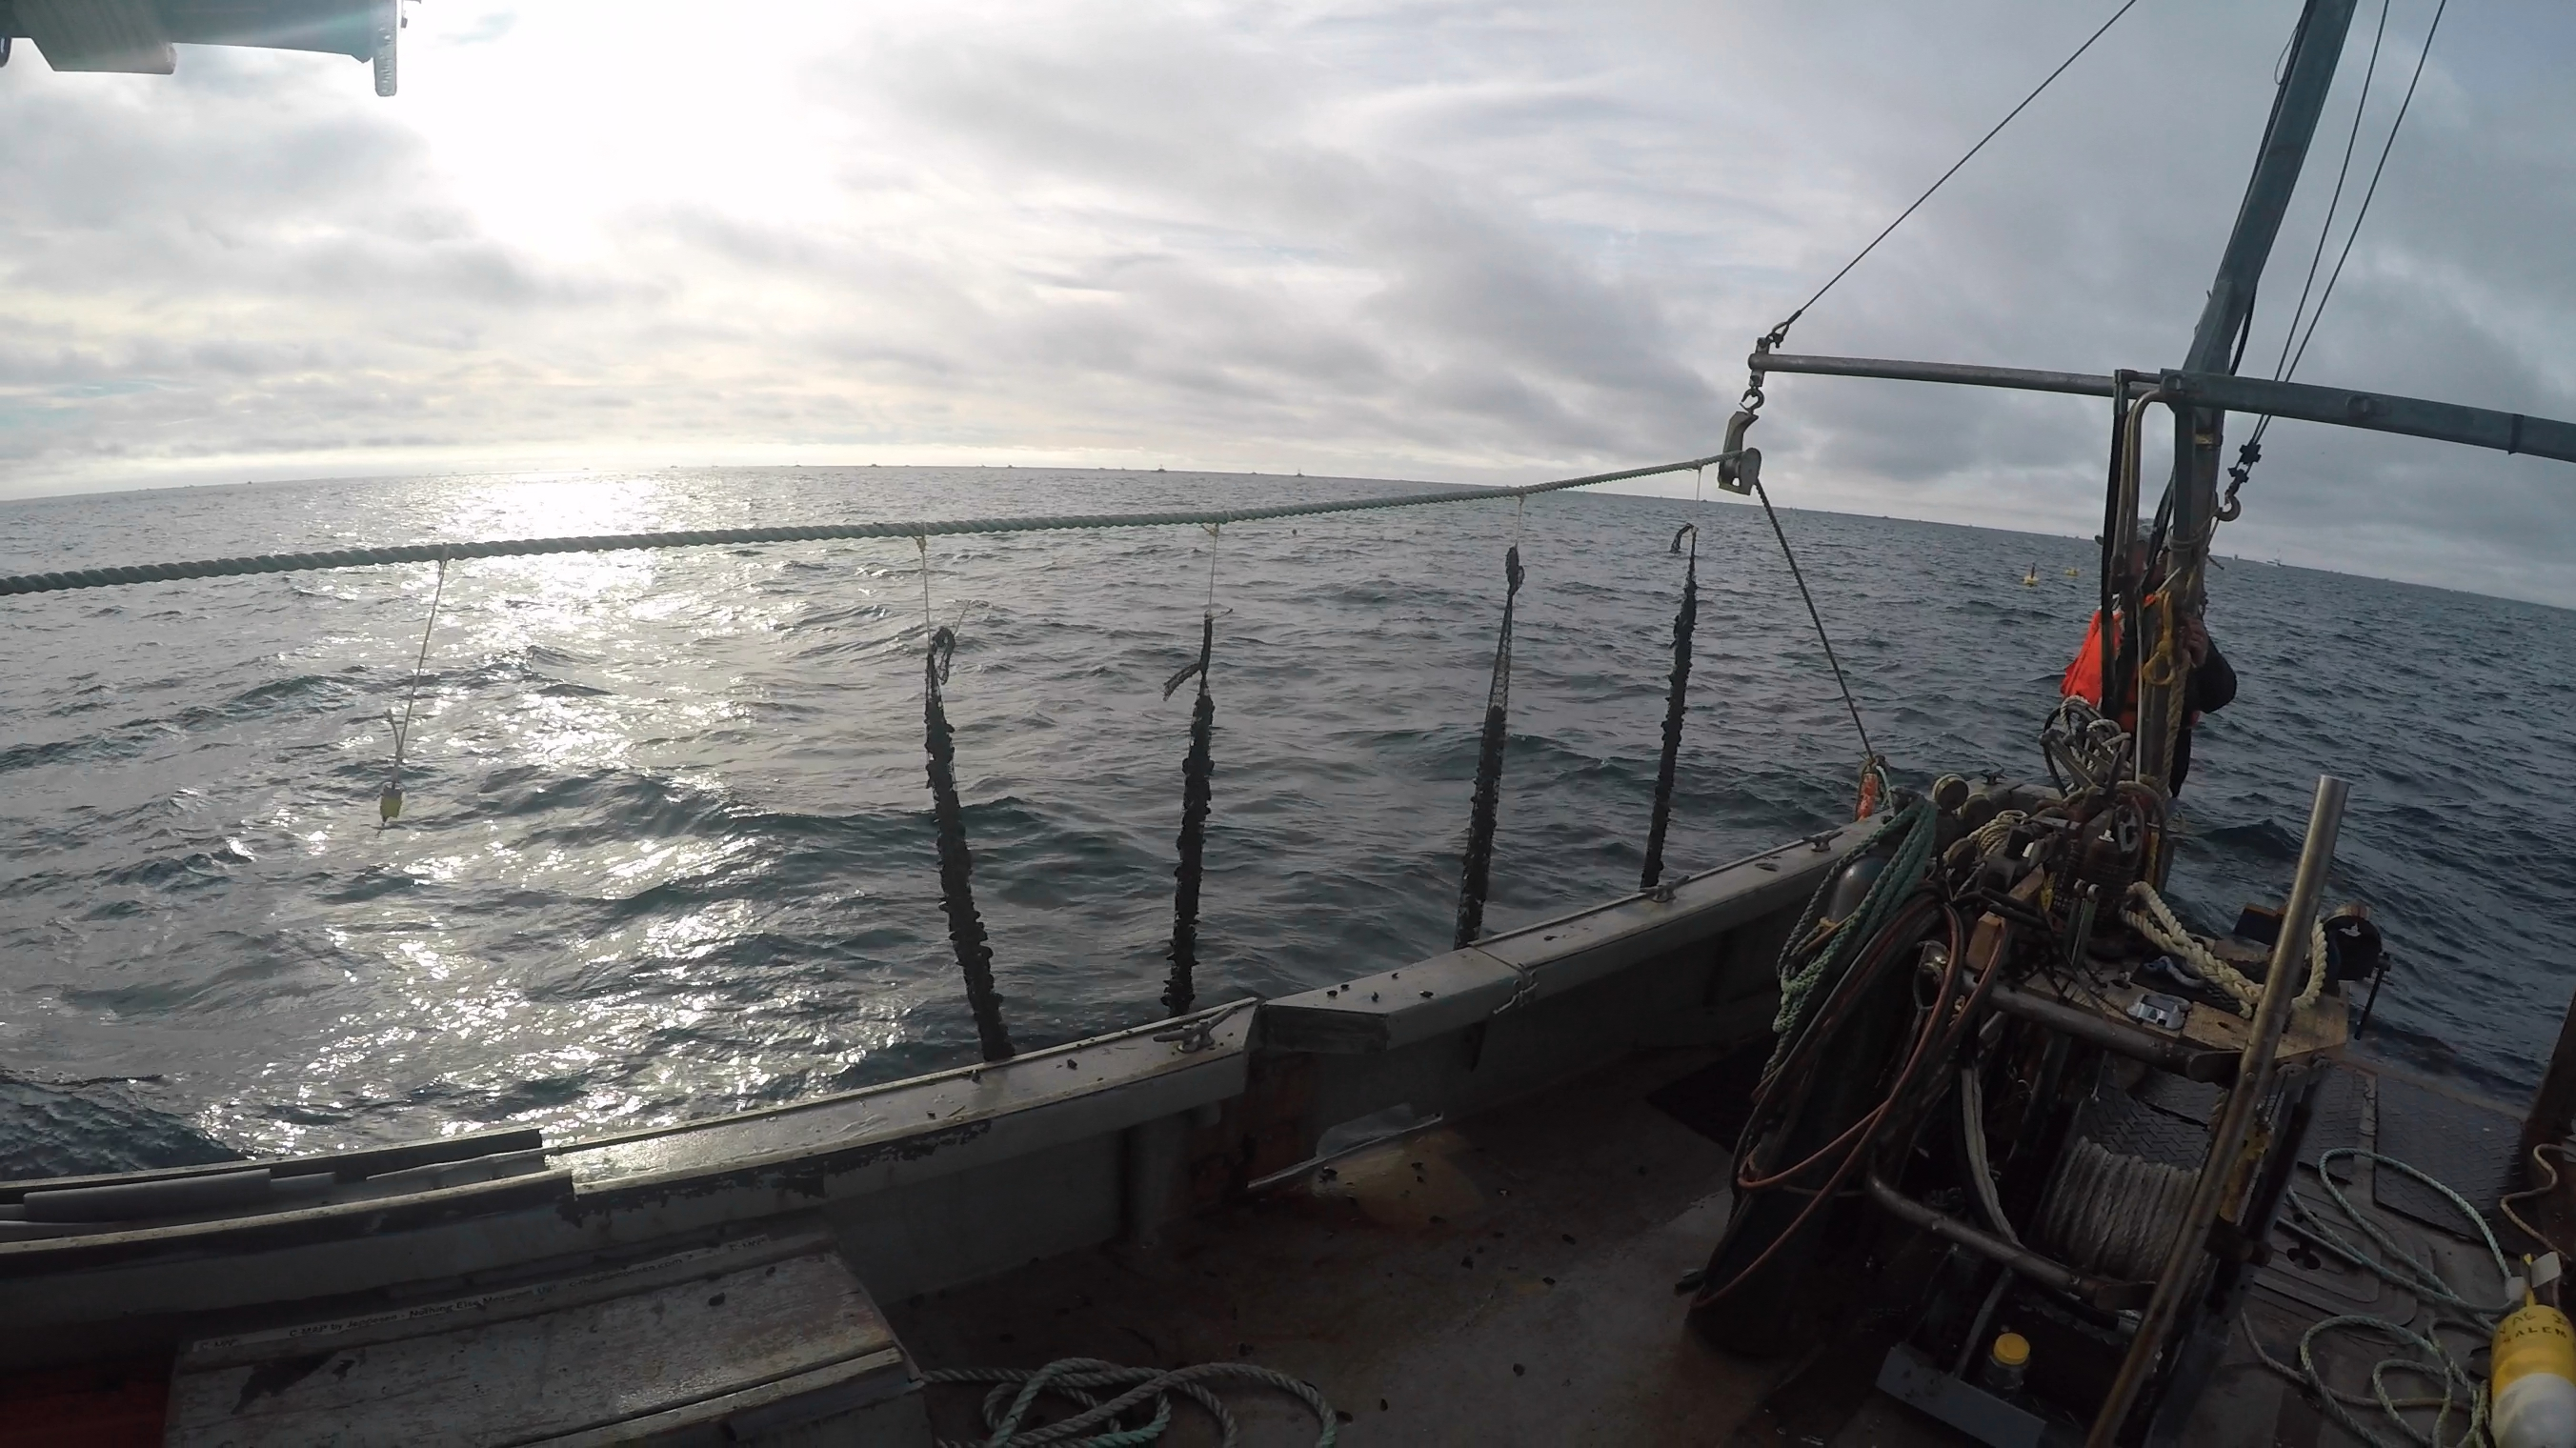 Mussel grow lines being deployed at offshore mussel farm site